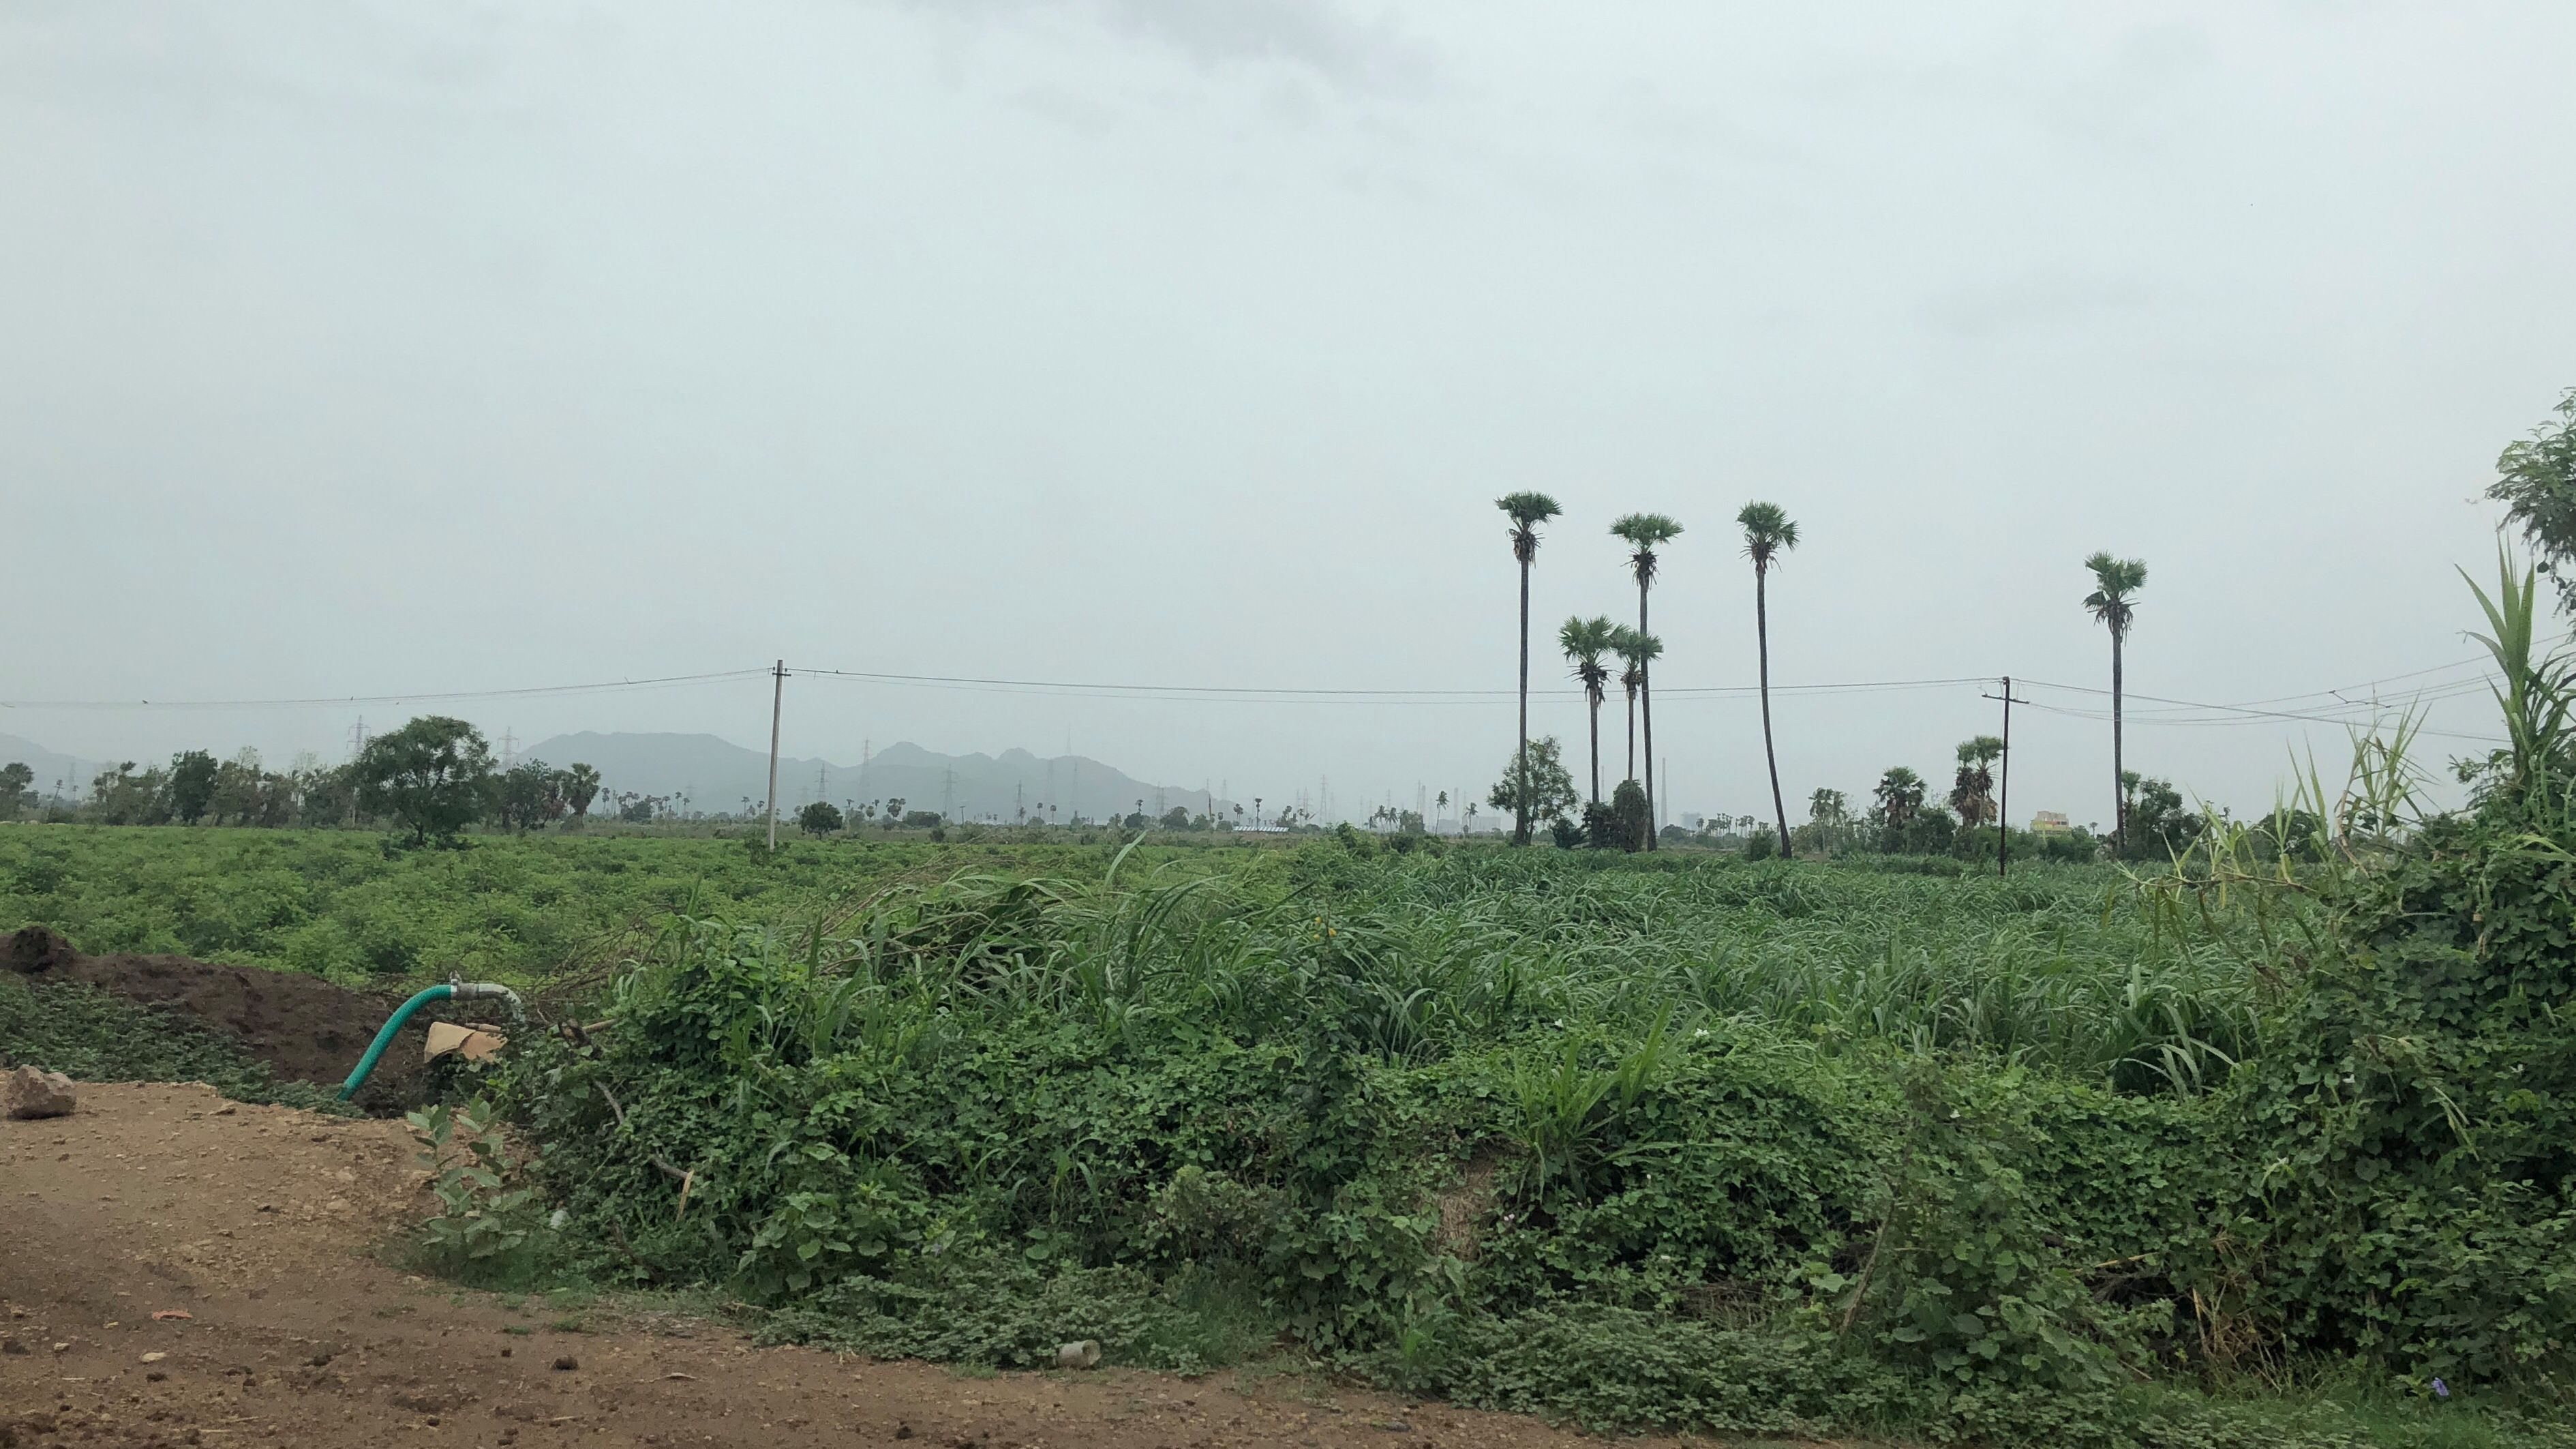 Fields around Rayapudi village, a township that comes under the capital, Amaravati. Photo credit: Quartz/Ananya Bhattacharya